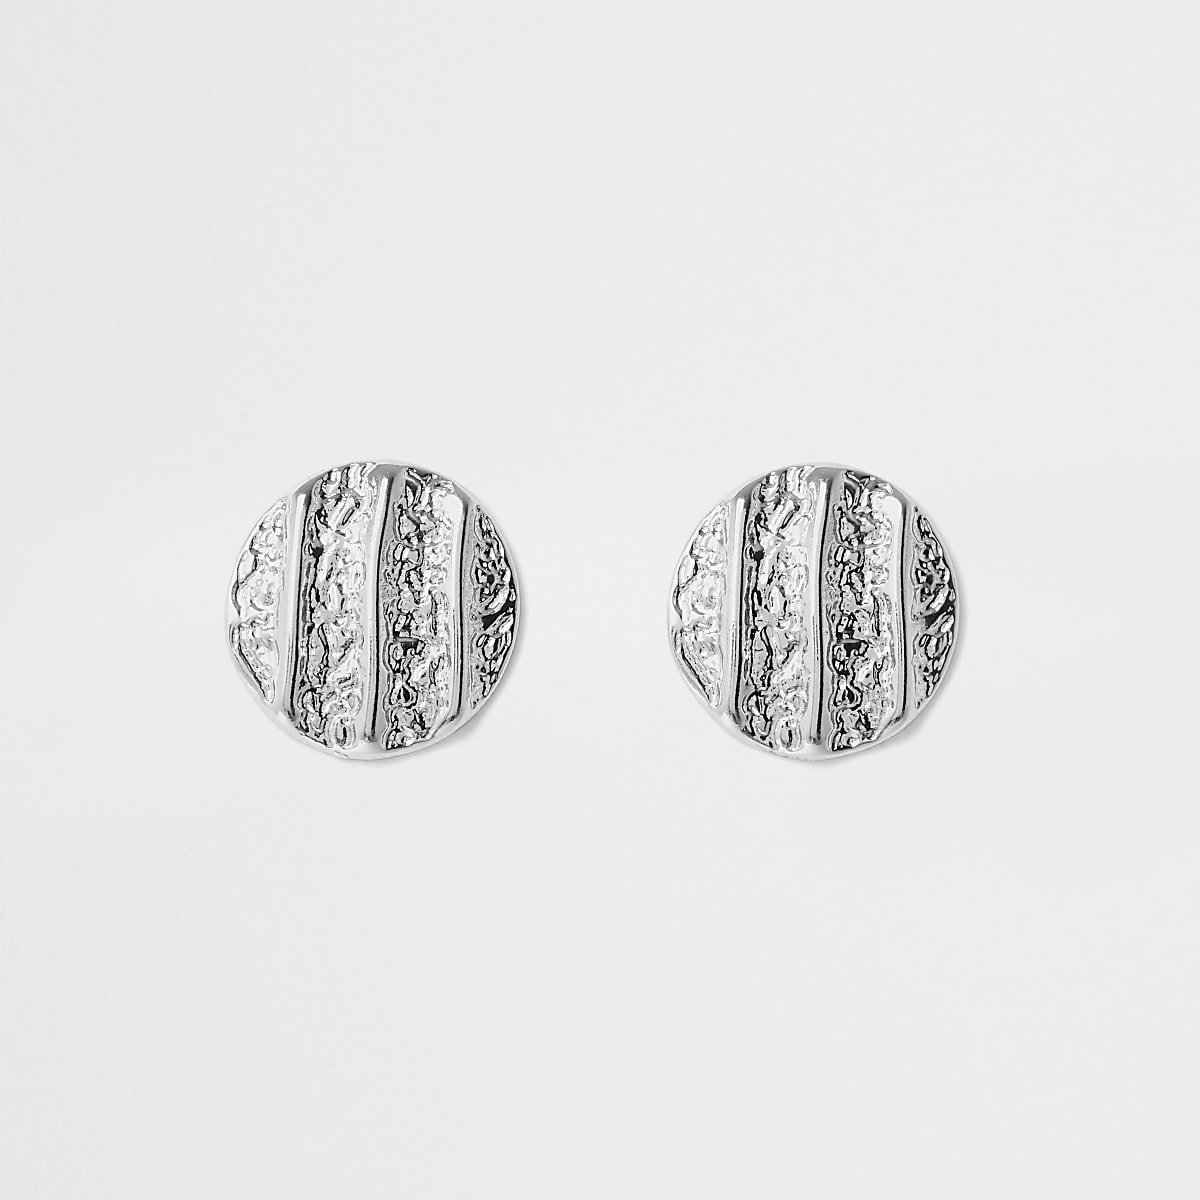 Silver colour textured stud earrings